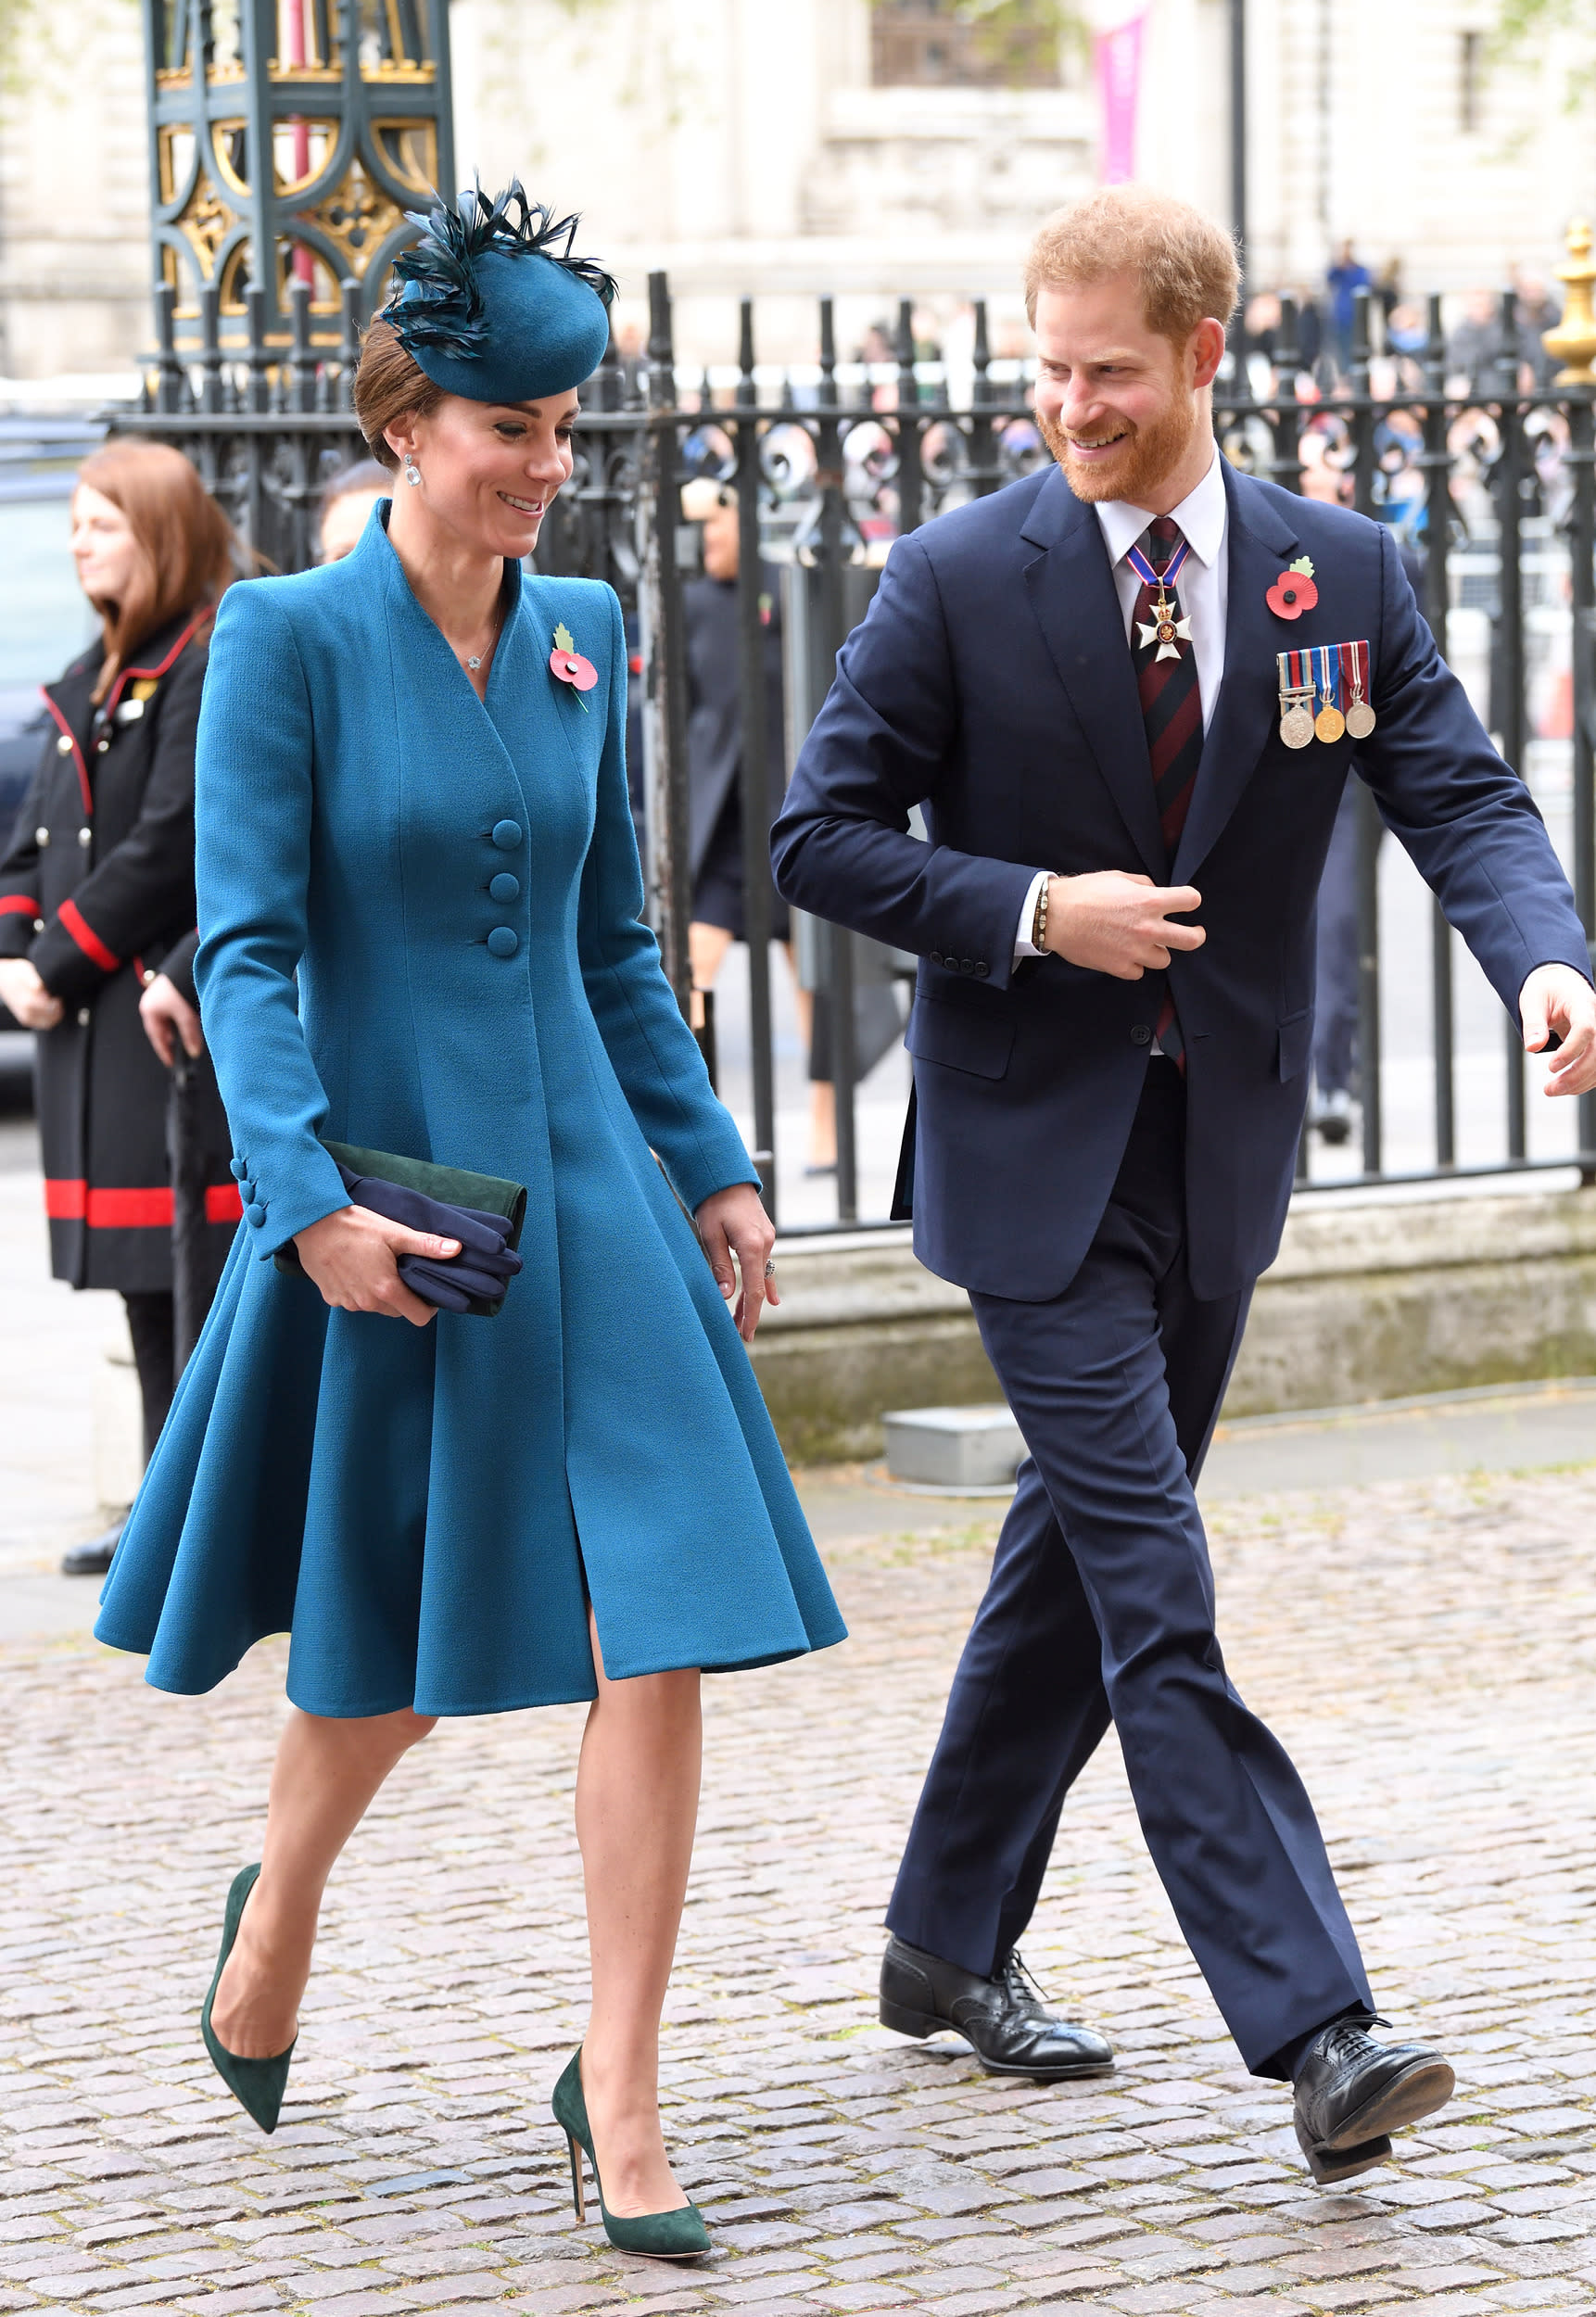 LONDON, ENGLAND - APRIL 25: Catherine, Duchess of Cambridge and Prince Harry, Duke of Sussex attend the ANZAC Day Service of Commemoration and Thanksgiving at Westminster Abbey on April 25, 2019 in London, United Kingdom. (Photo by Karwai Tang/WireImage)